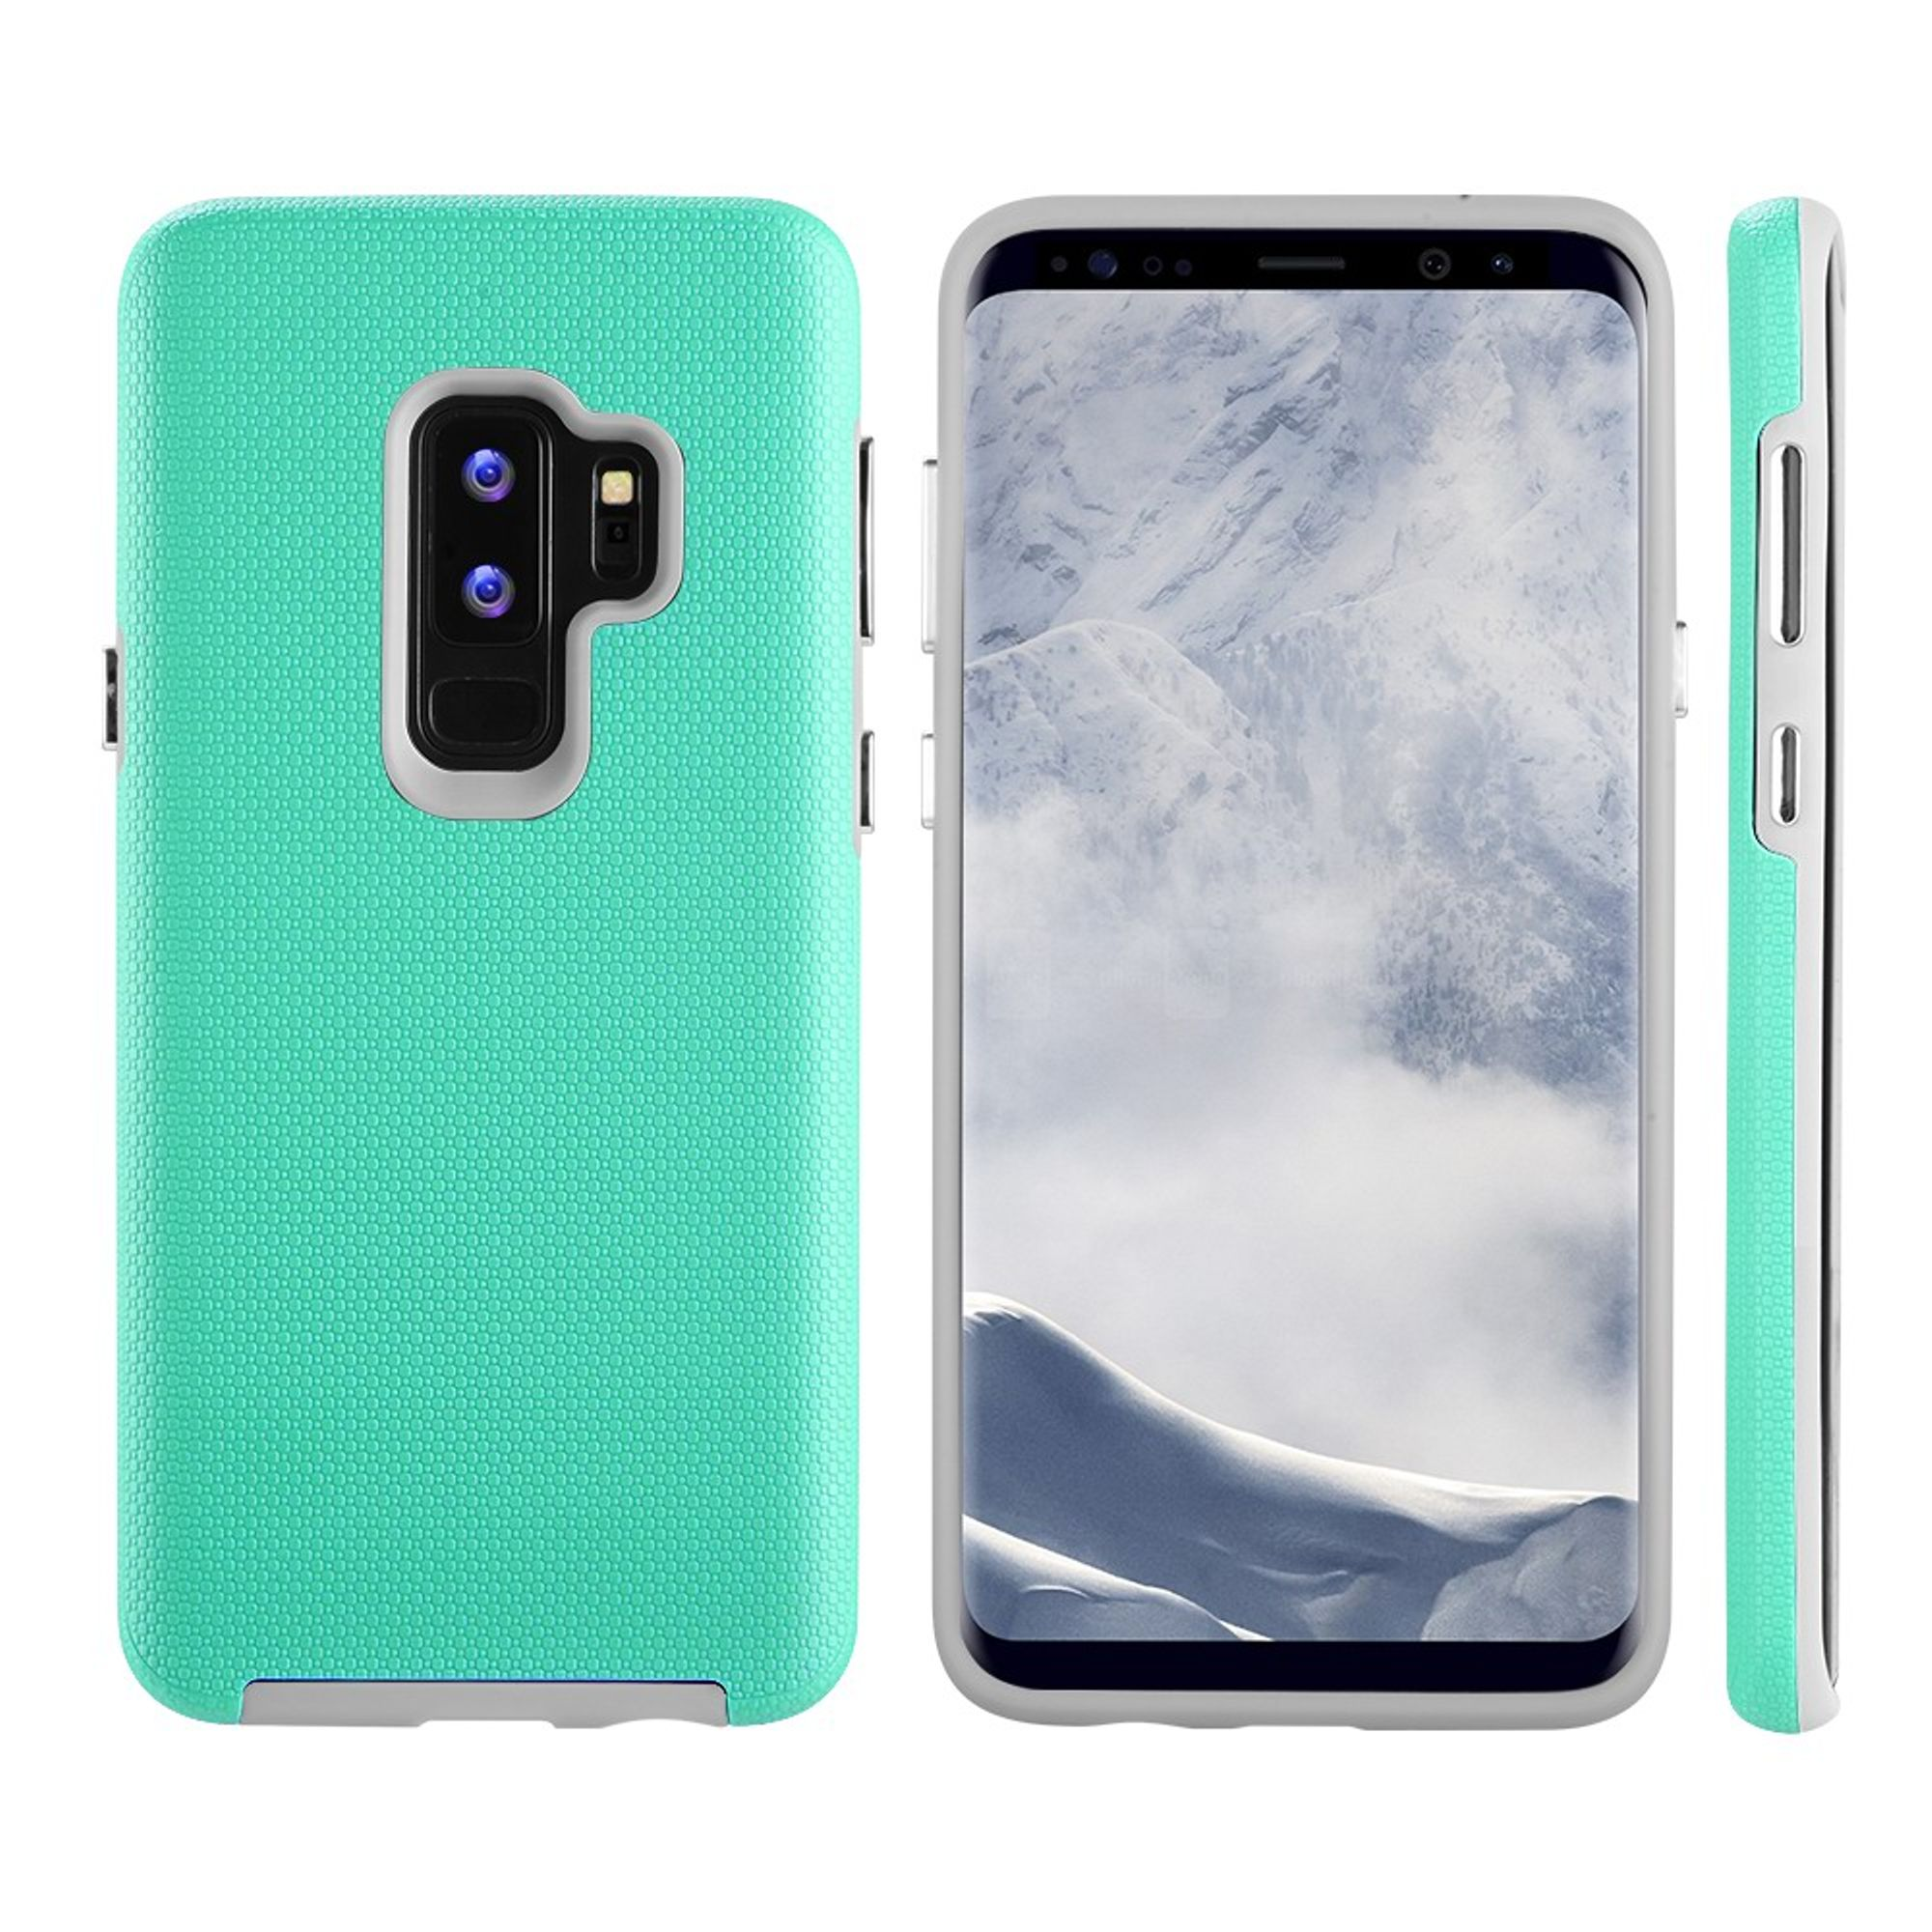 Samsung Galaxy S9 Plus Case, by Insten Hard Plastic/Soft TPU Rubber Dual Layer [Shock Absorbing] Hybrid Case Phone Cover For Samsung Galaxy S9 Plus